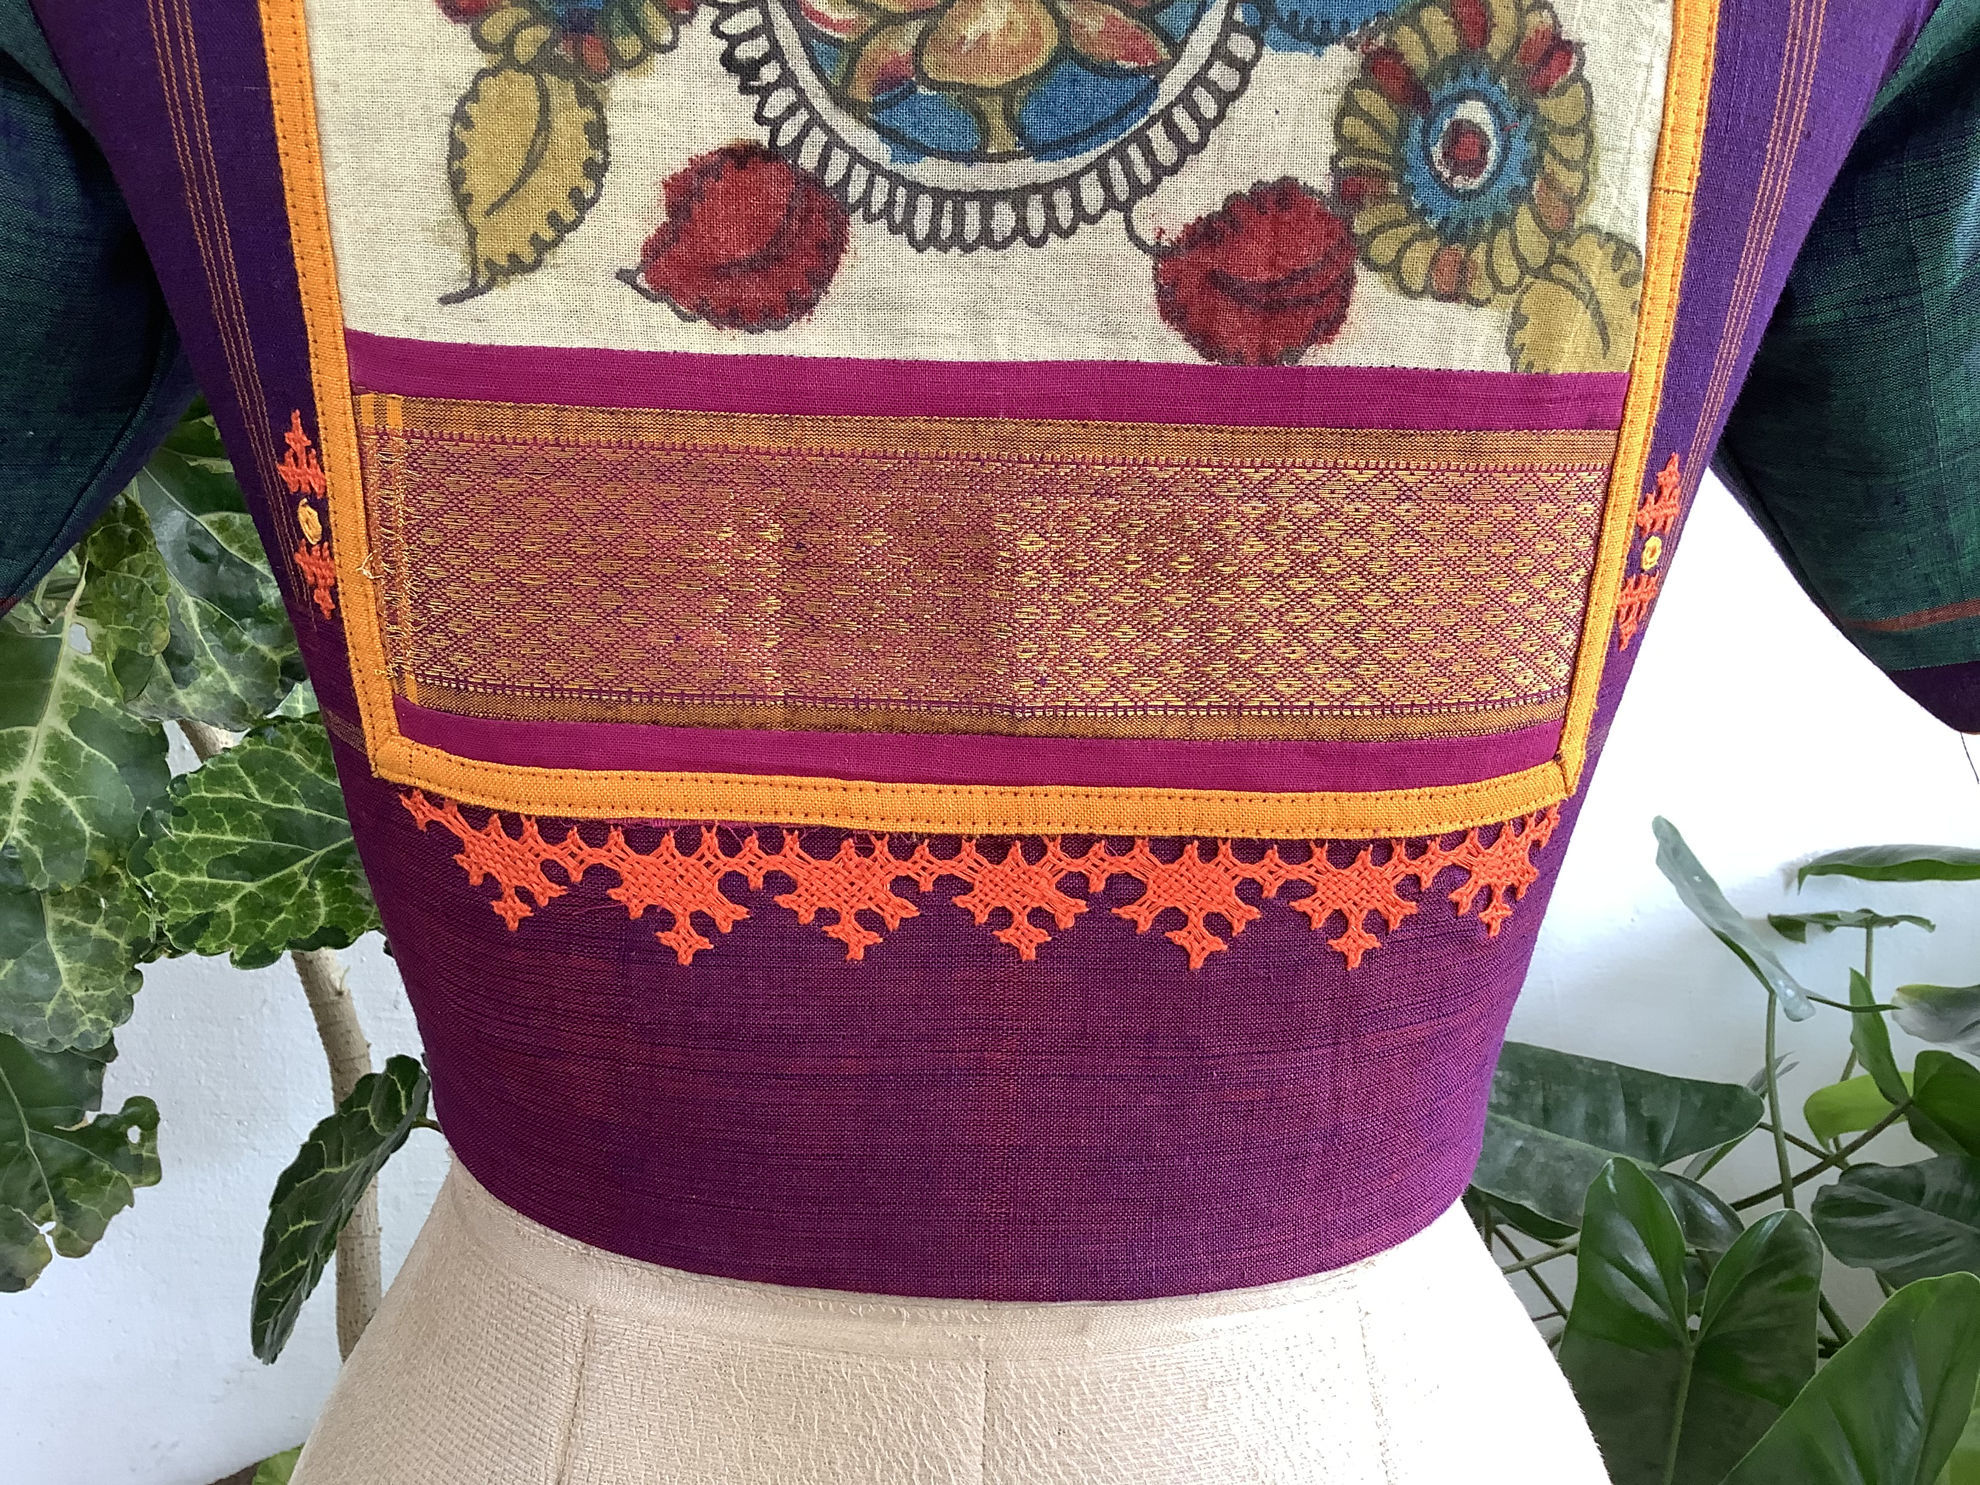 KALAMKARI ON VIOLET